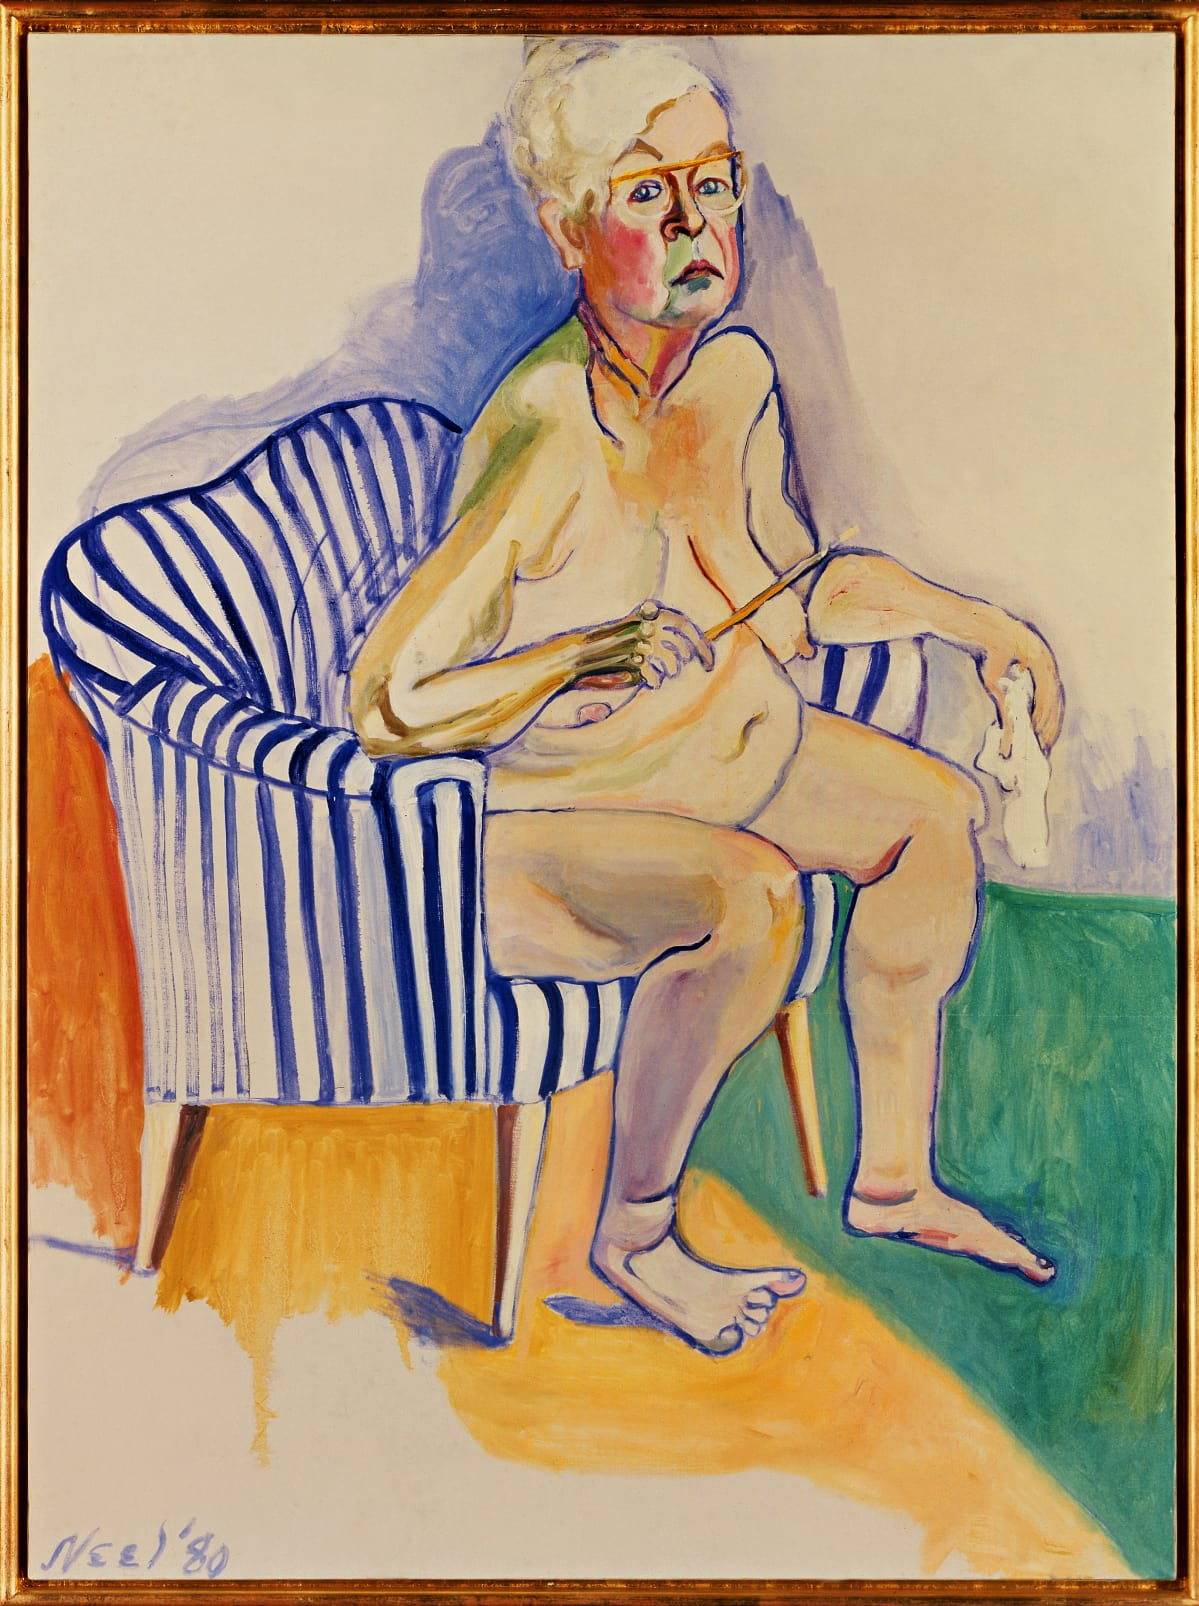 Self-Portrait (1980)